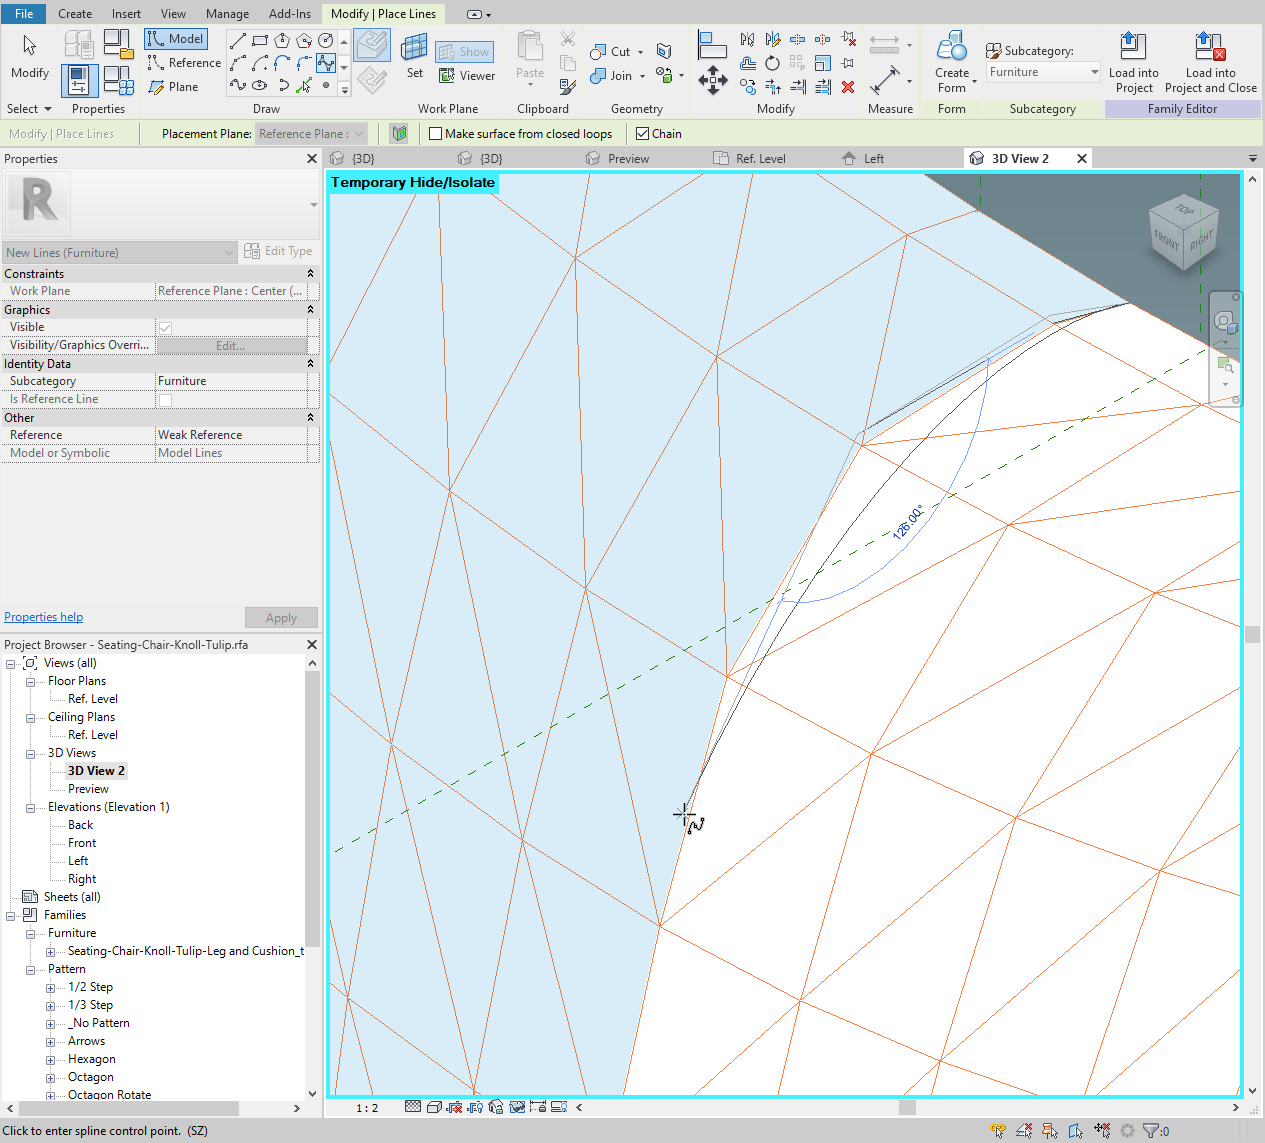 Draw the spline following the intersection of the work plane.